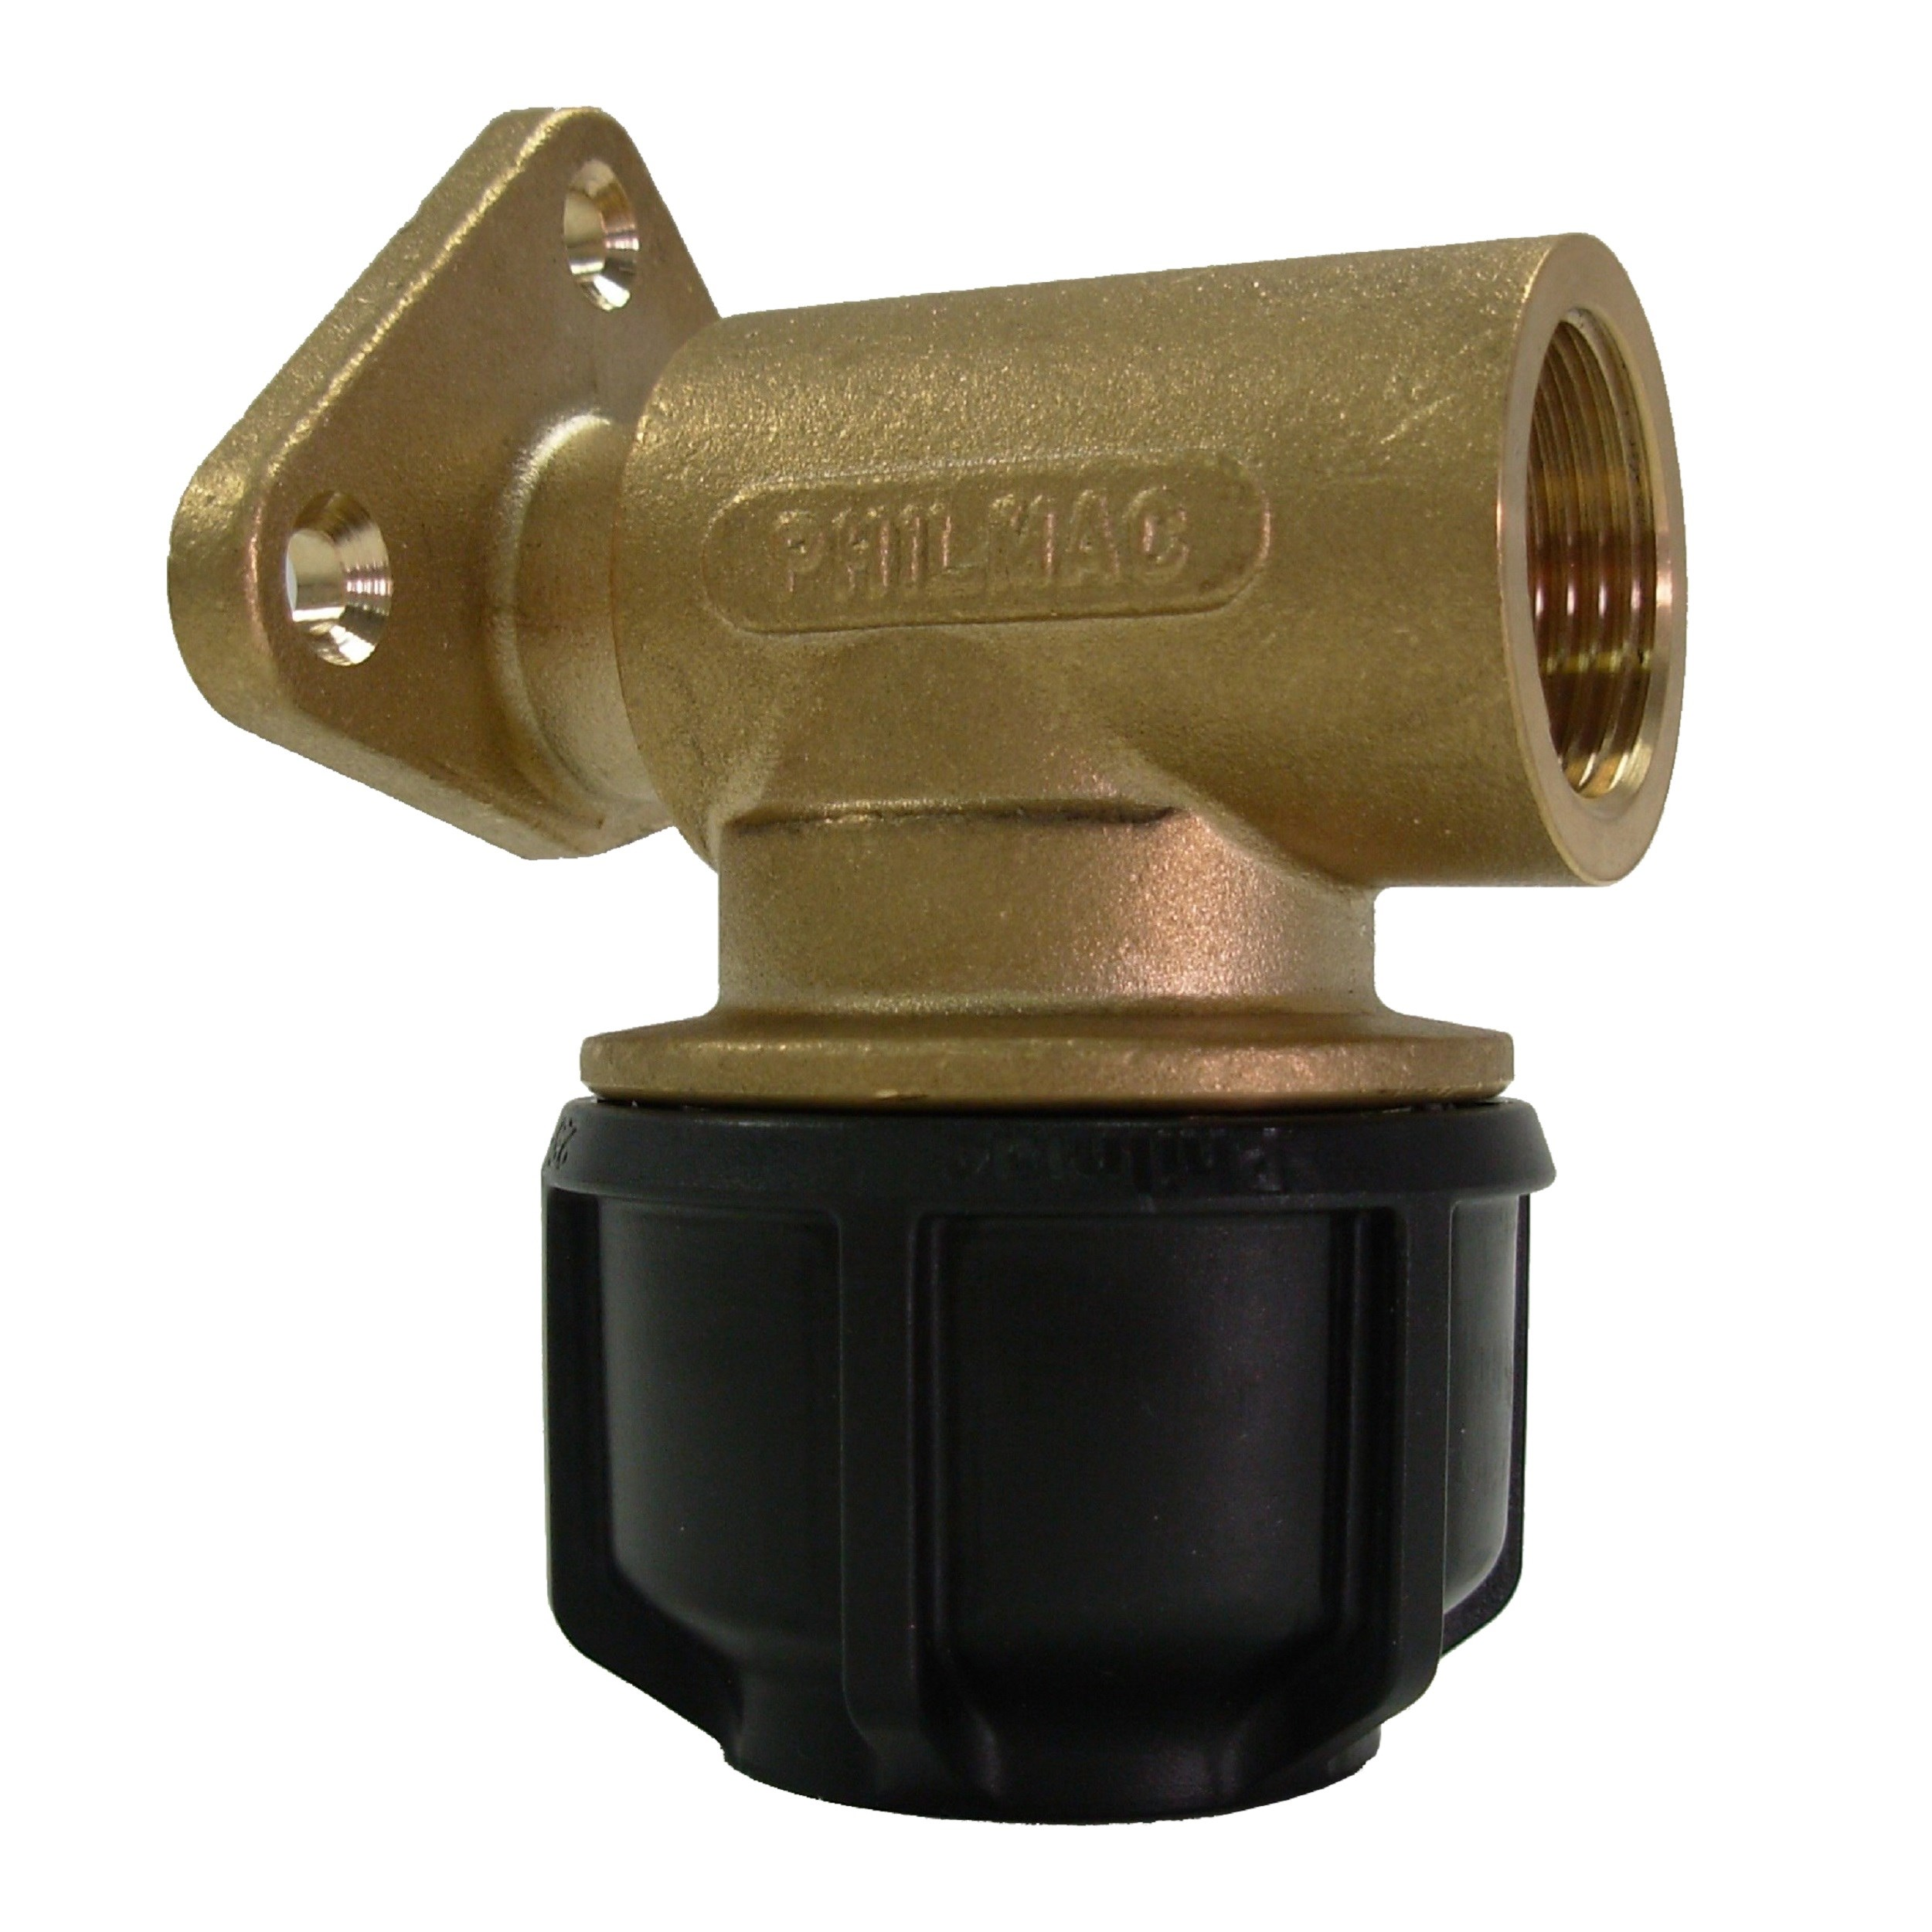 Philmac Metric Imperial Wall Plate Elbow Pipe Fitting